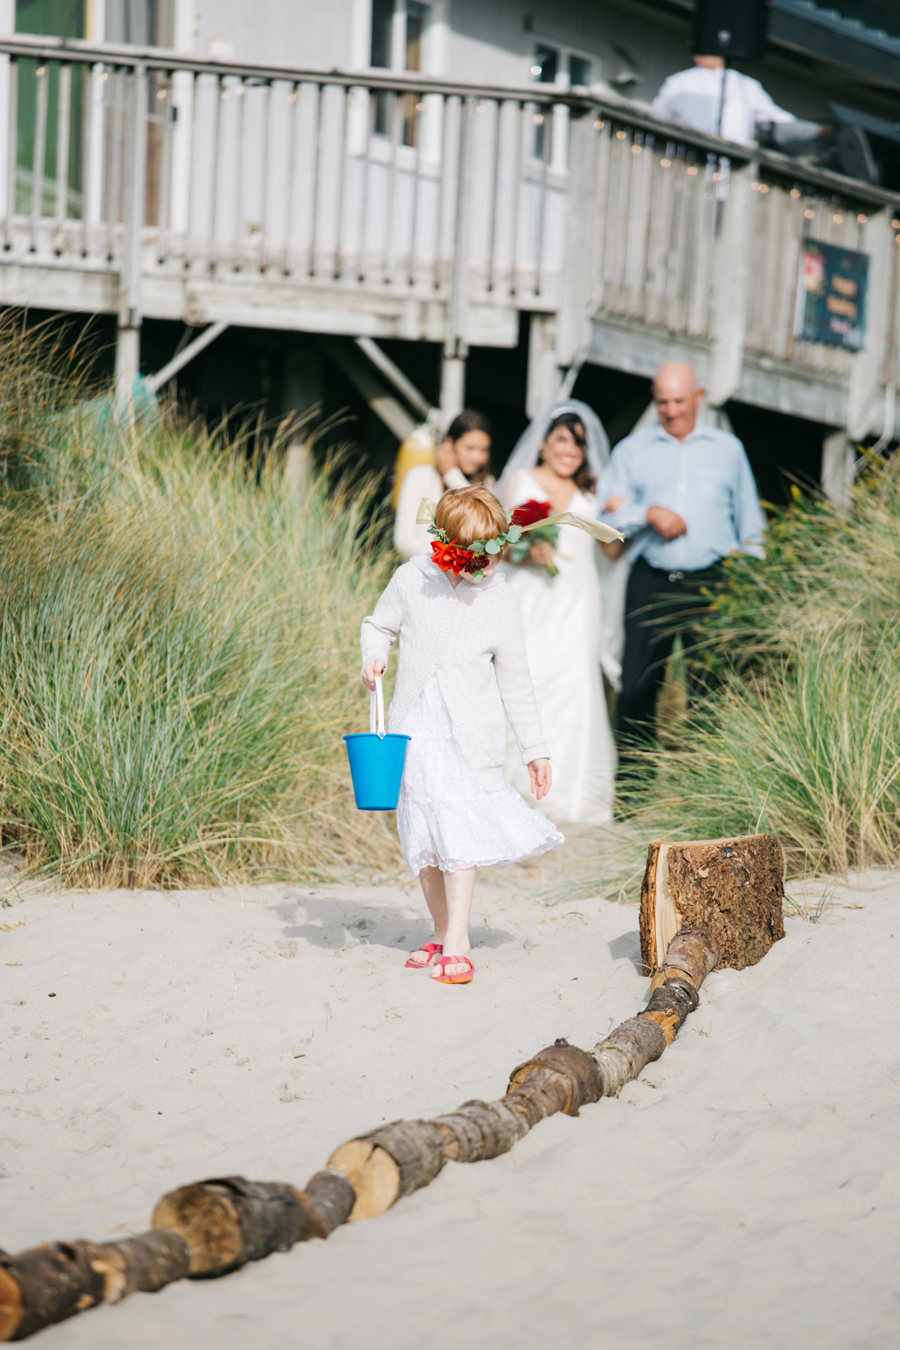 026-portland-wedding-photographer-pacific-city-oregon-katheryn-moran-photography.jpg